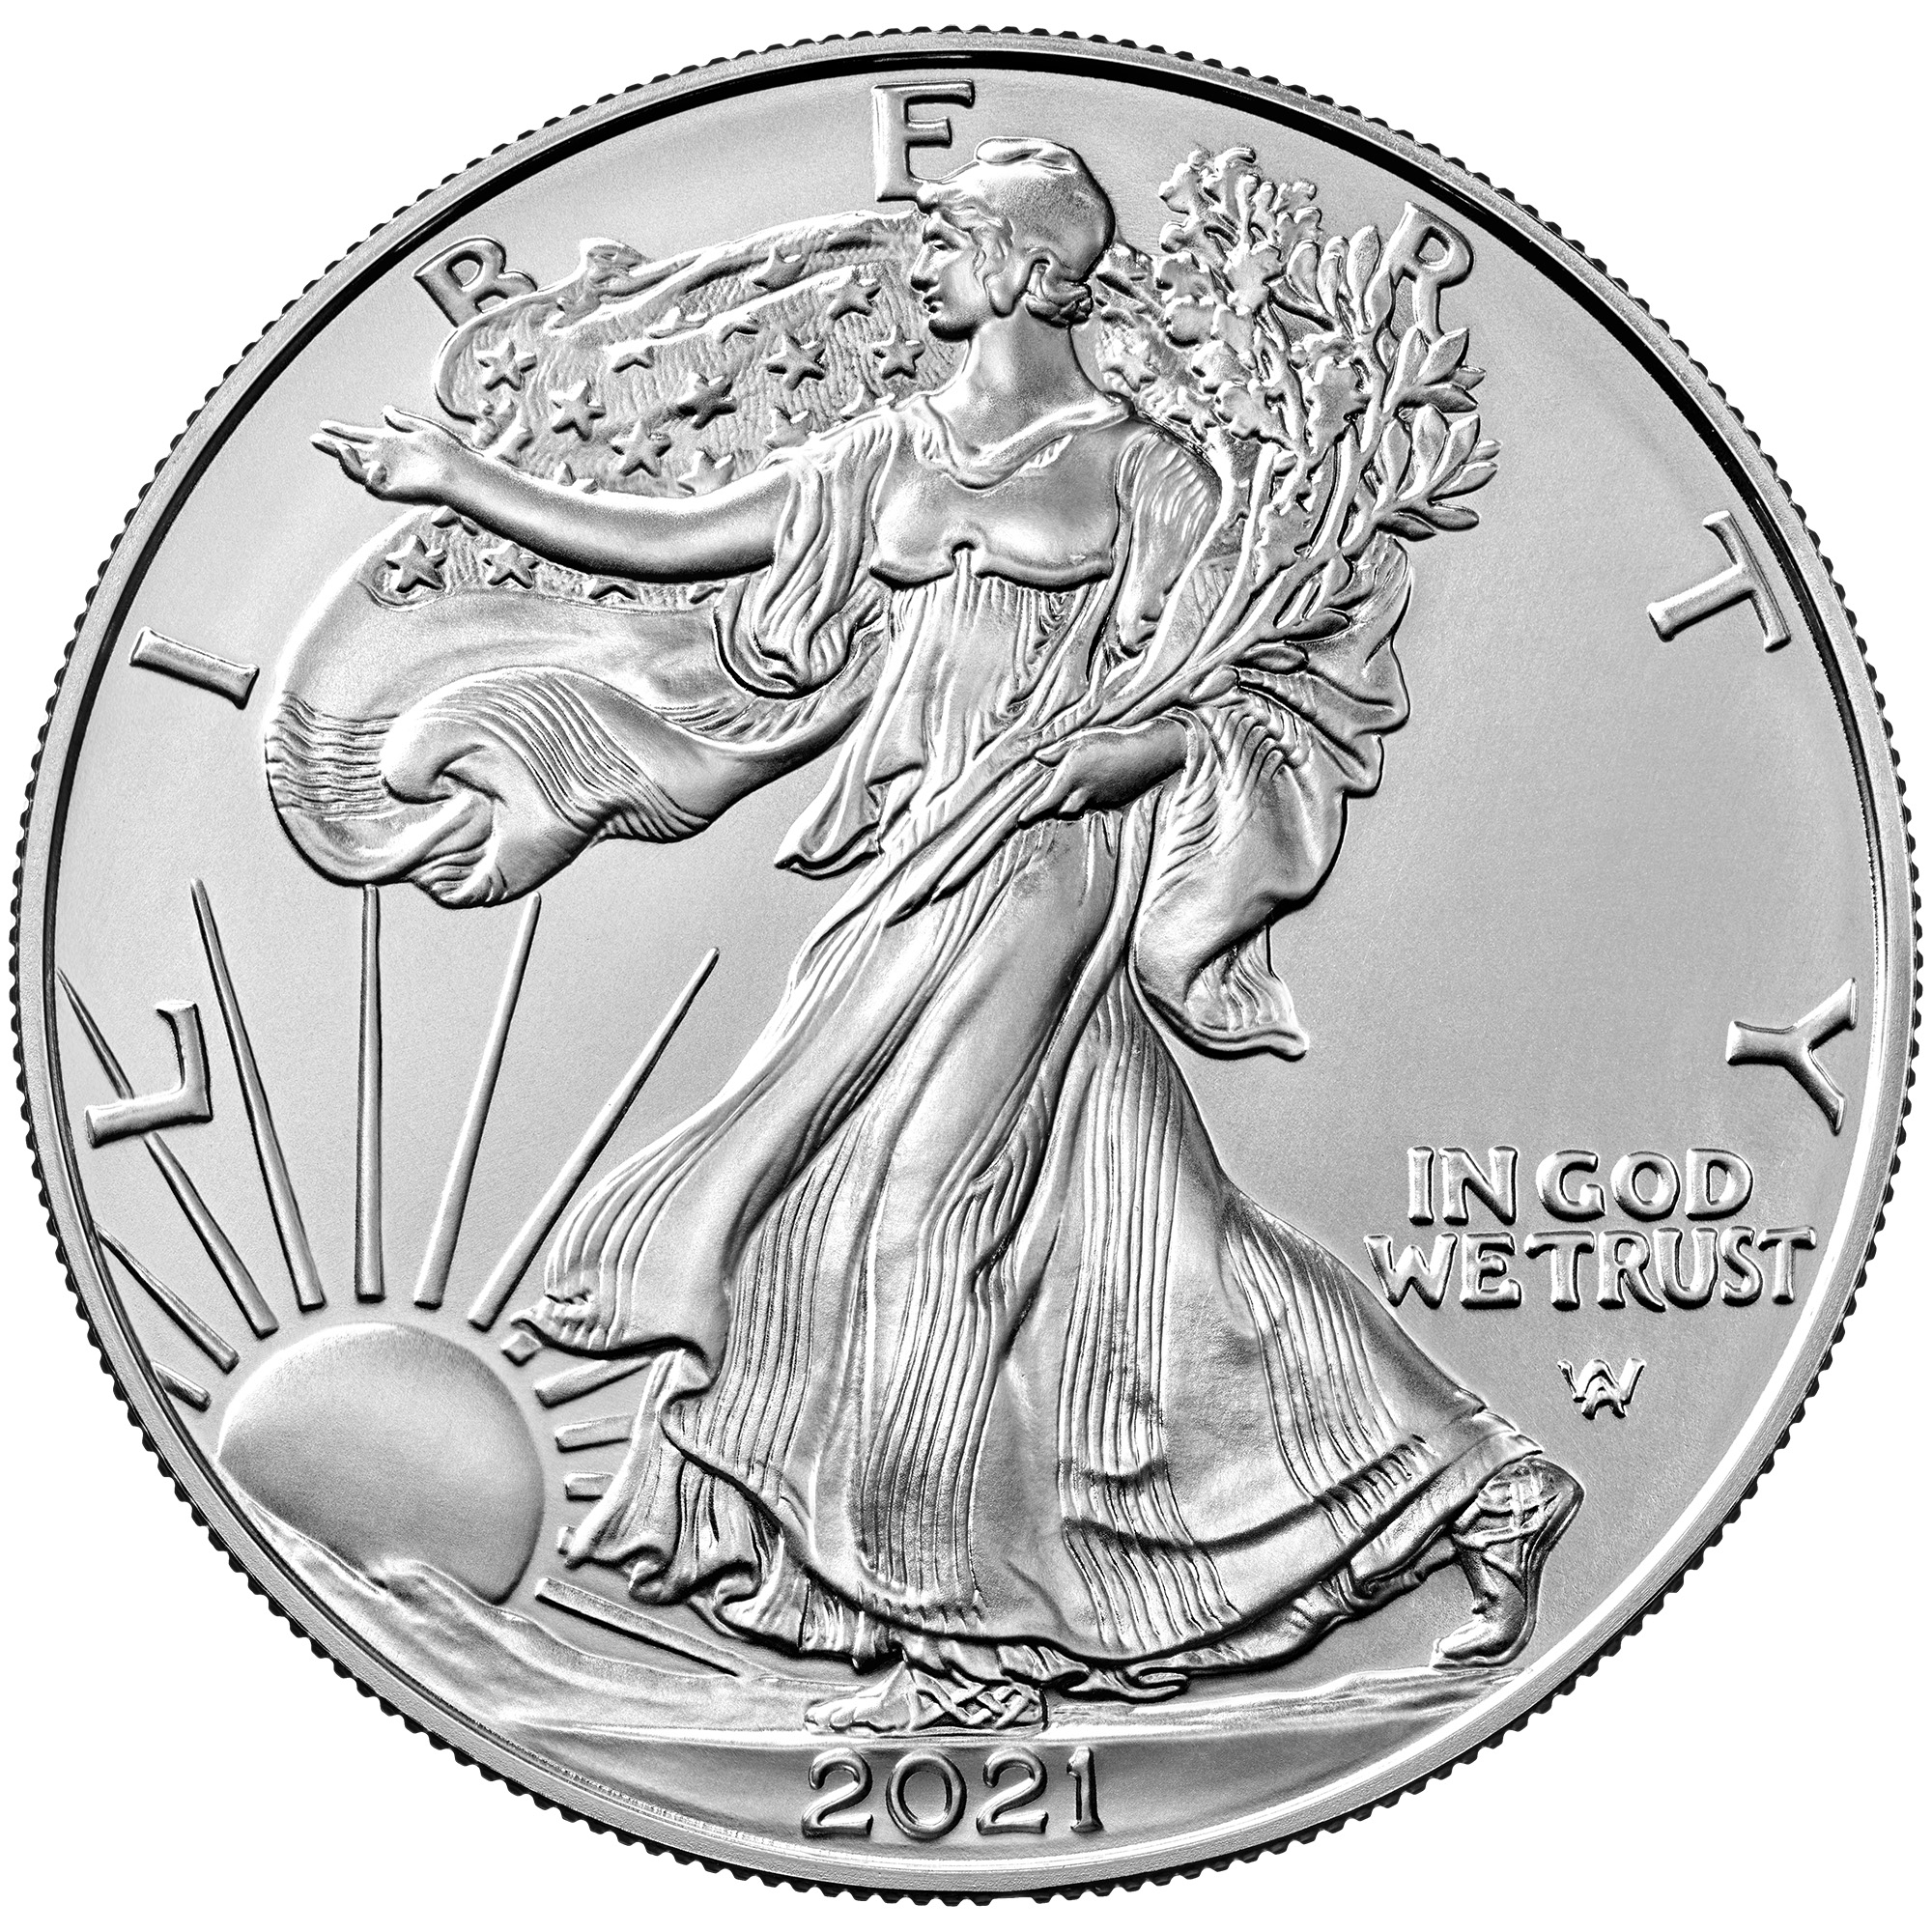 2021 American Eagle Silver One Ounce Uncirculated Coin Obverse New Design